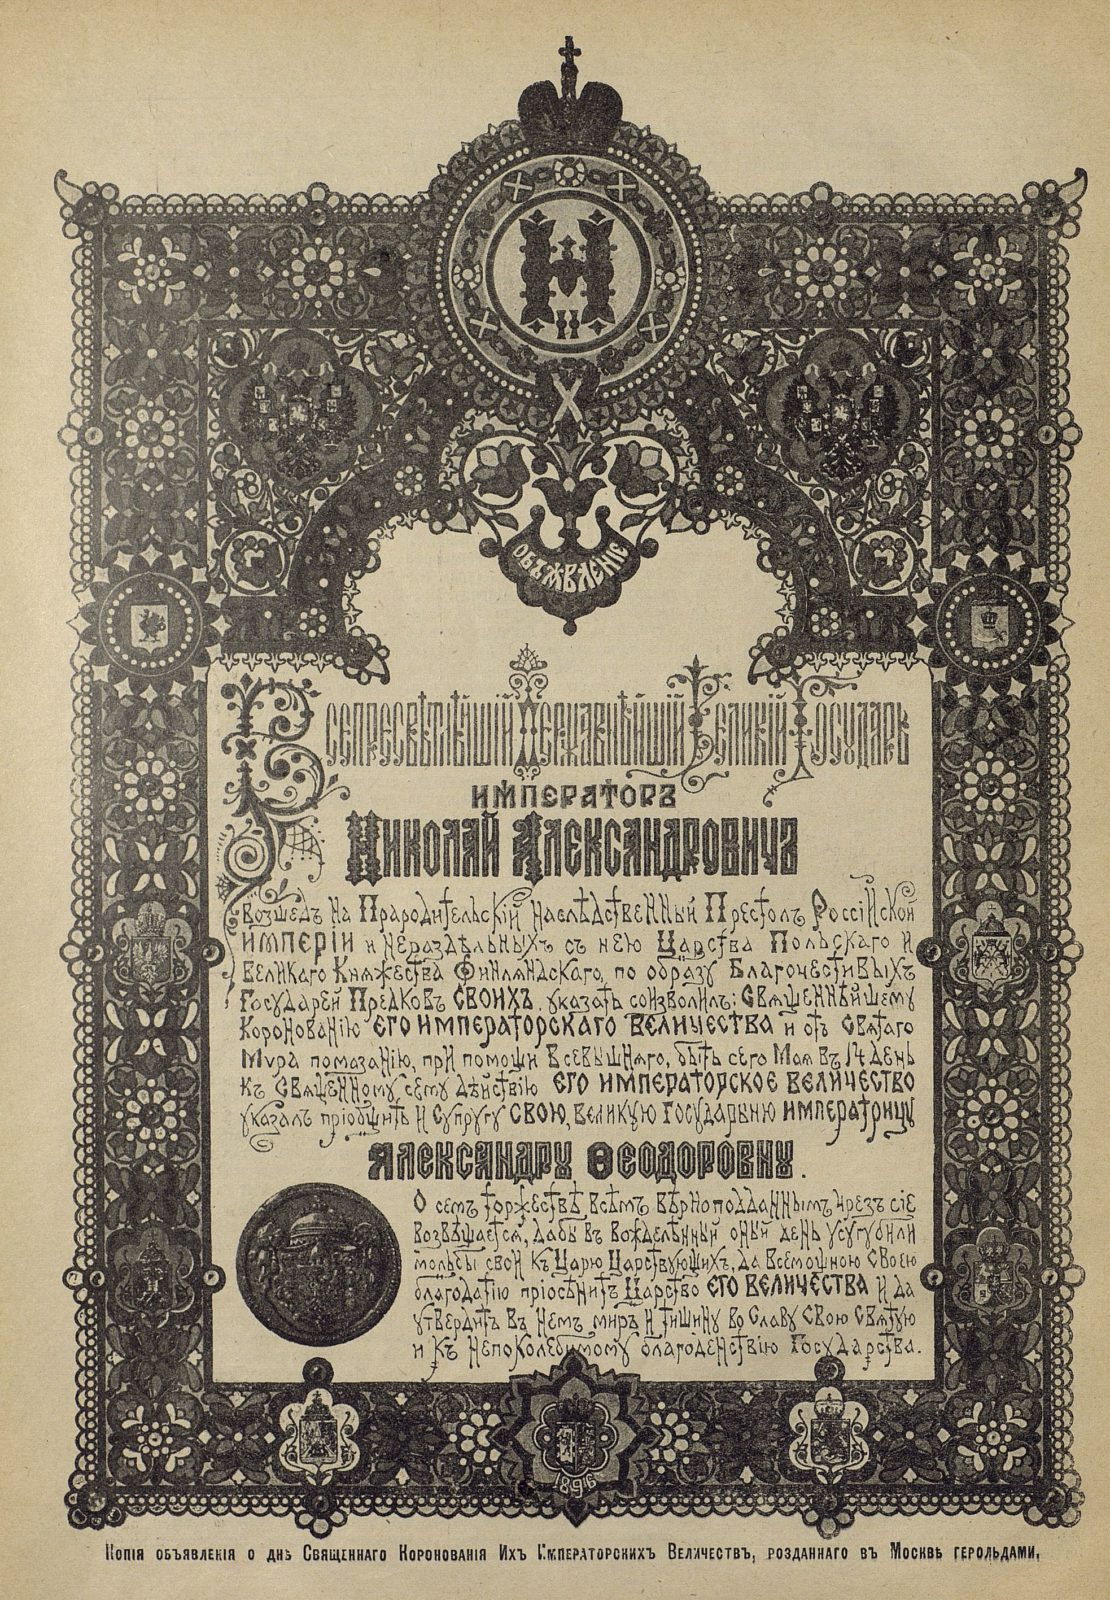 Coronation album in memory of the sacred crowning of their imperial majesties on May 14, 1896